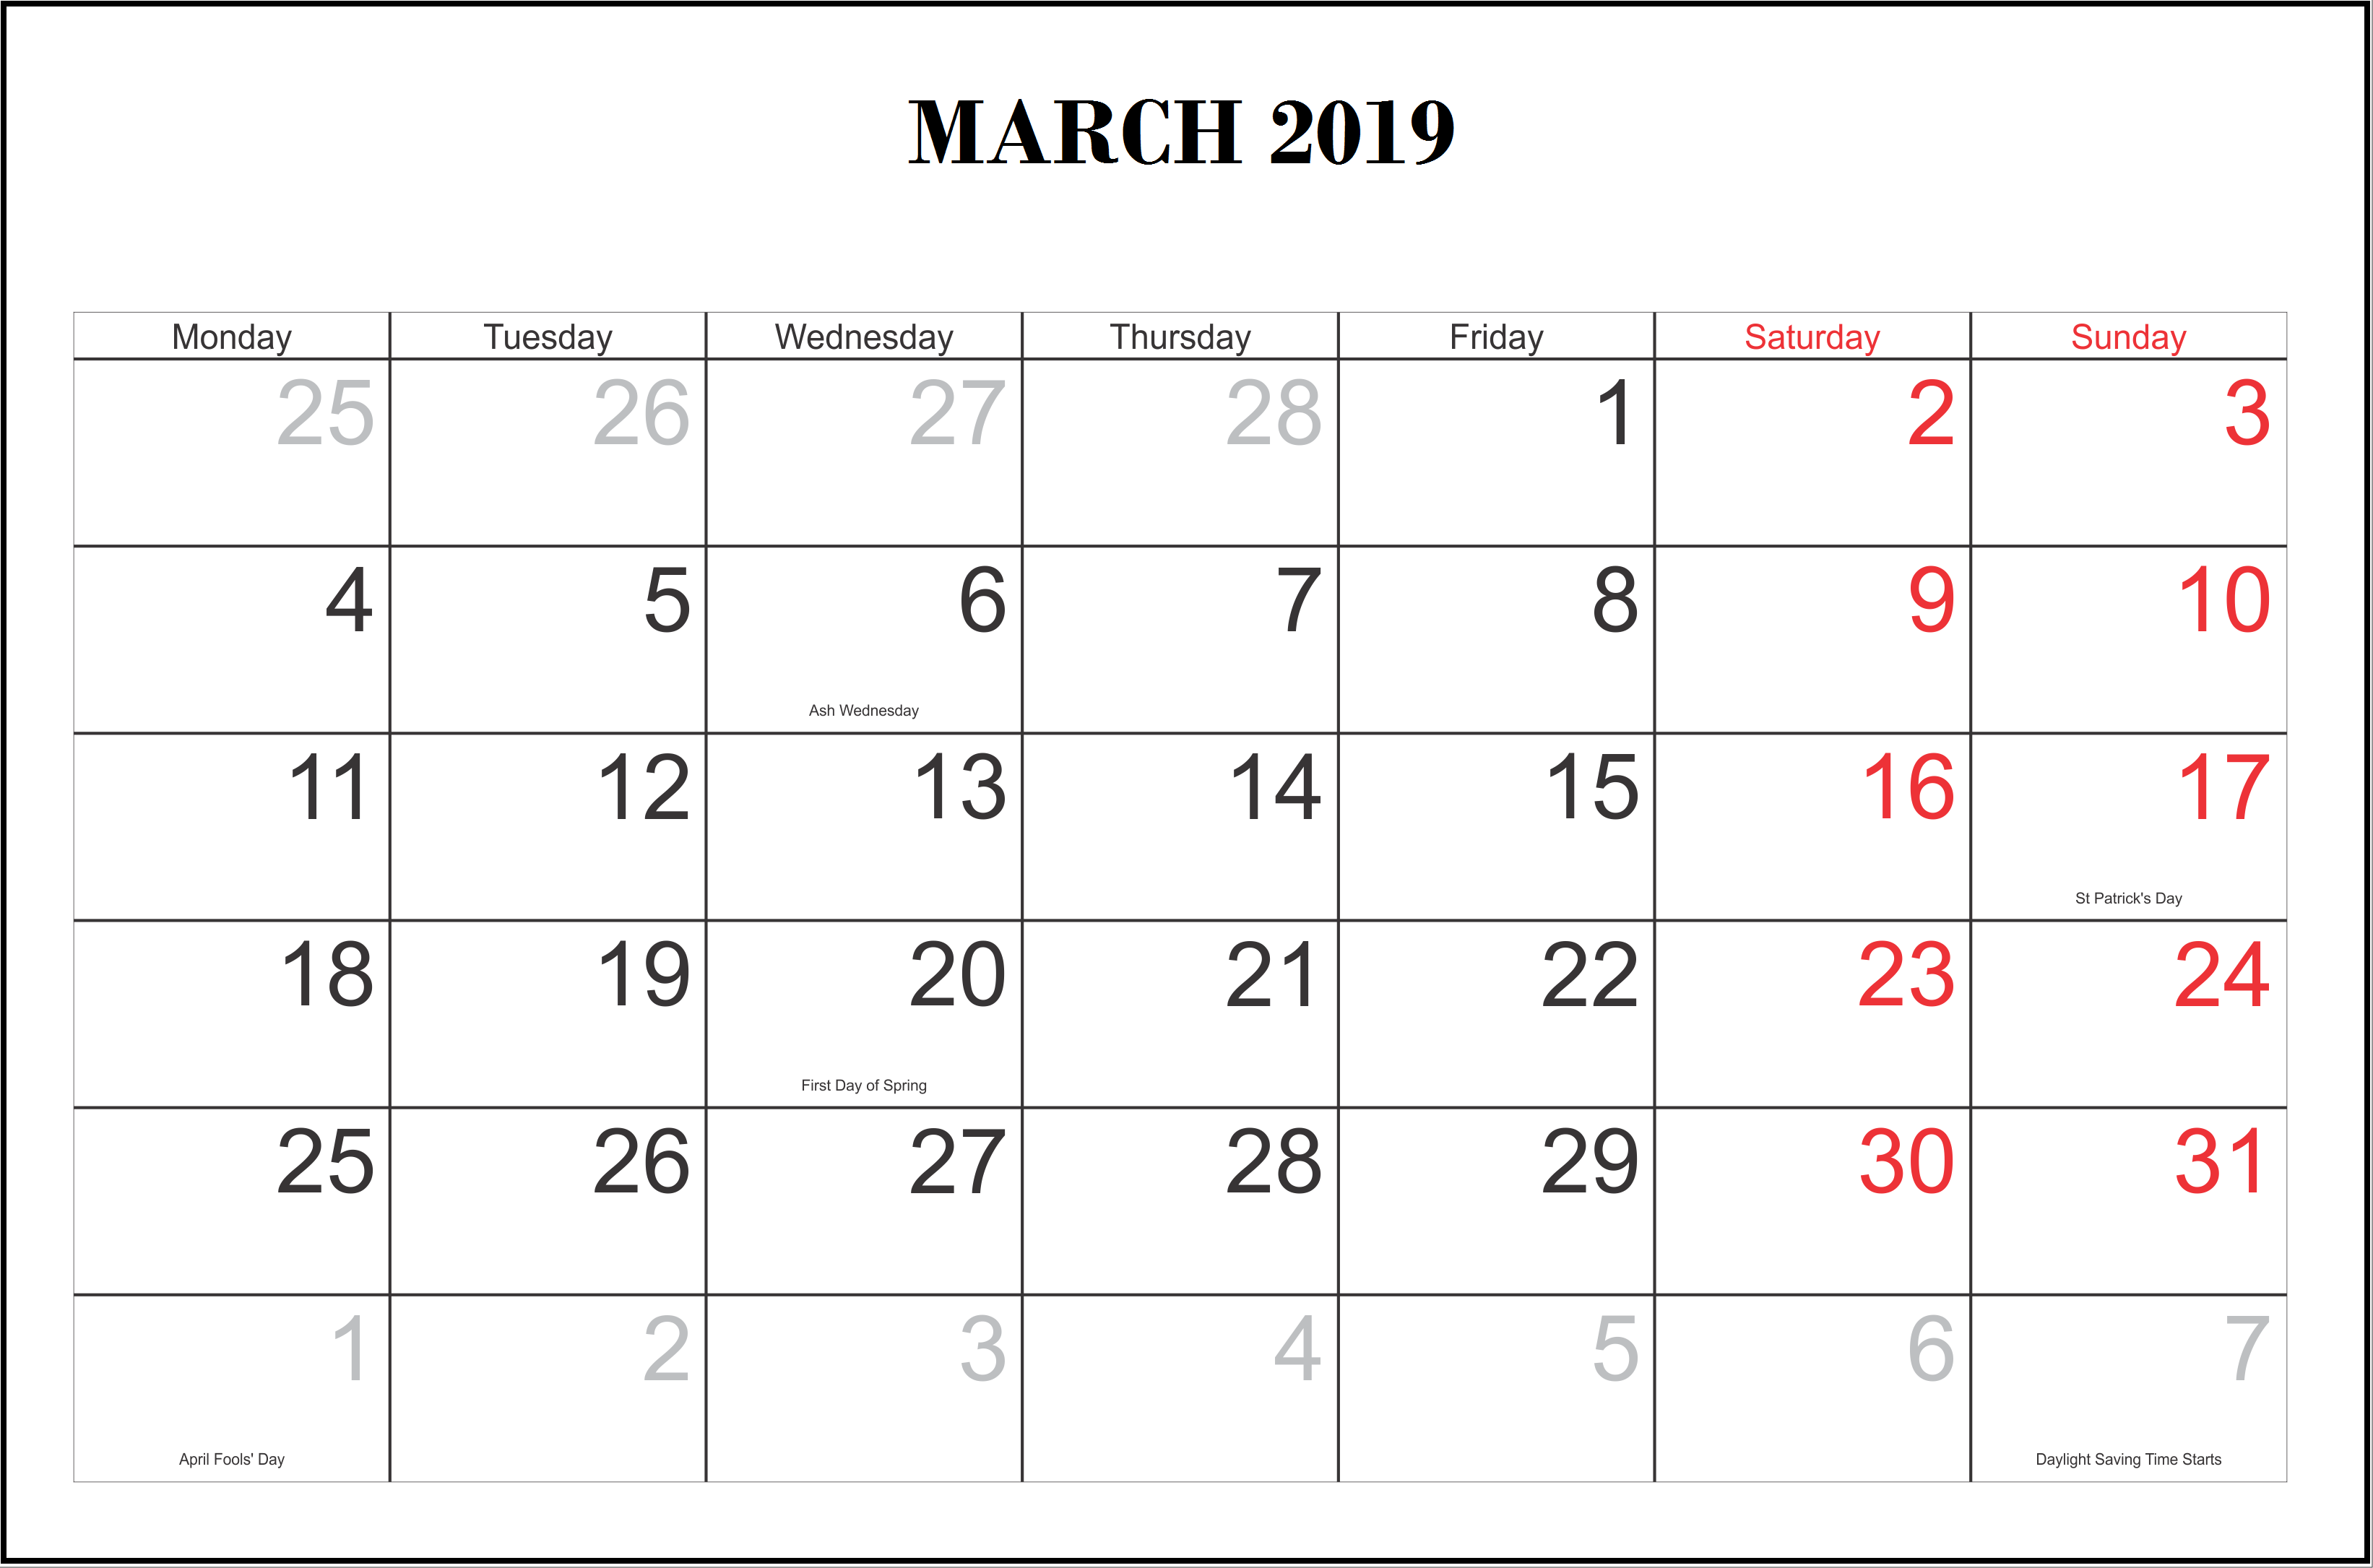 March 2019 Calendar UK Public Holidays